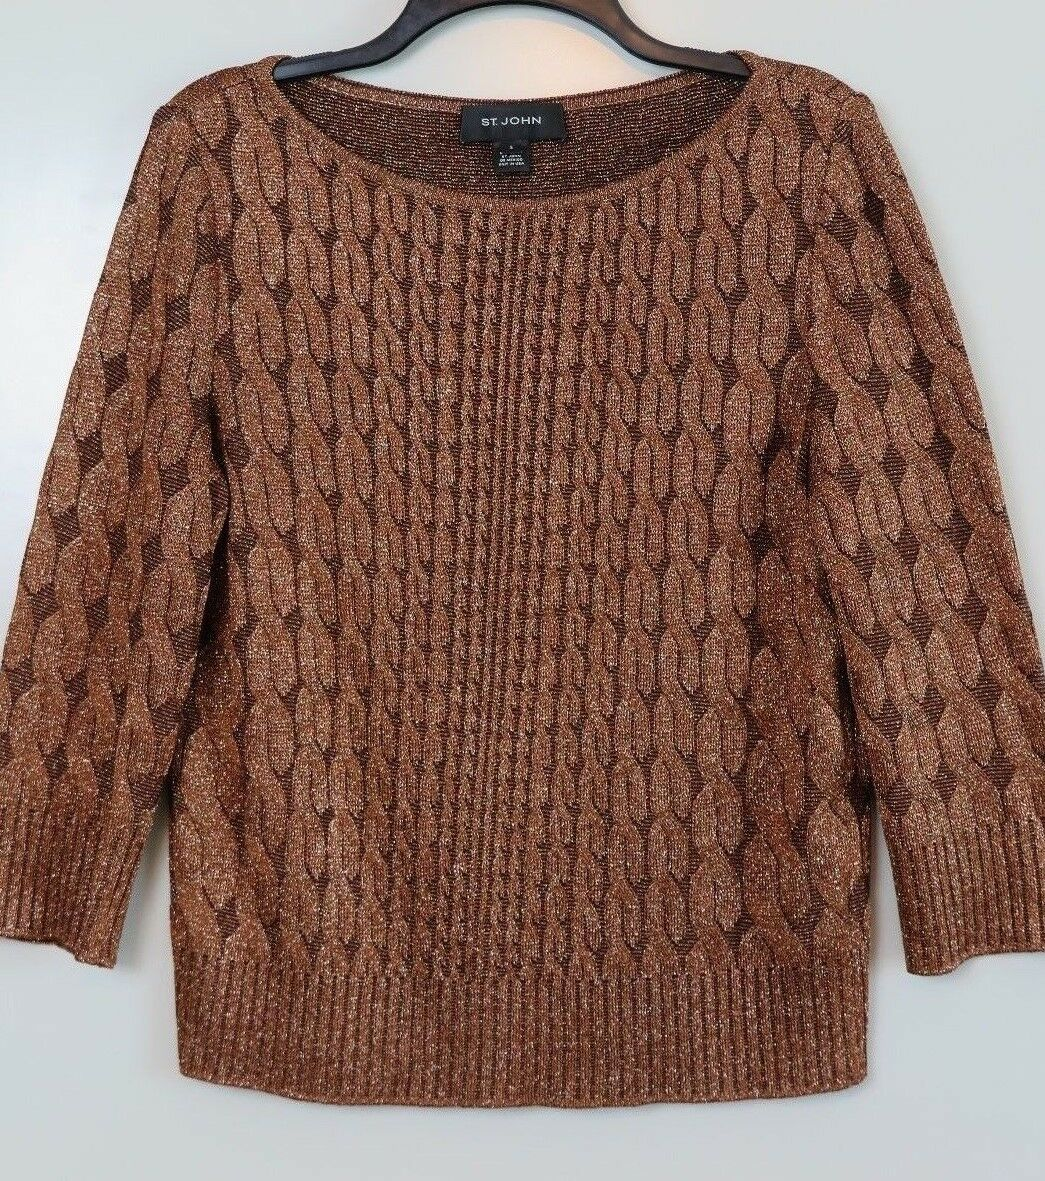 ST. JOHN Bronze Shimmer Acetate Wolle 3 4 Sleeve Cable-Texture Sweater Größe S